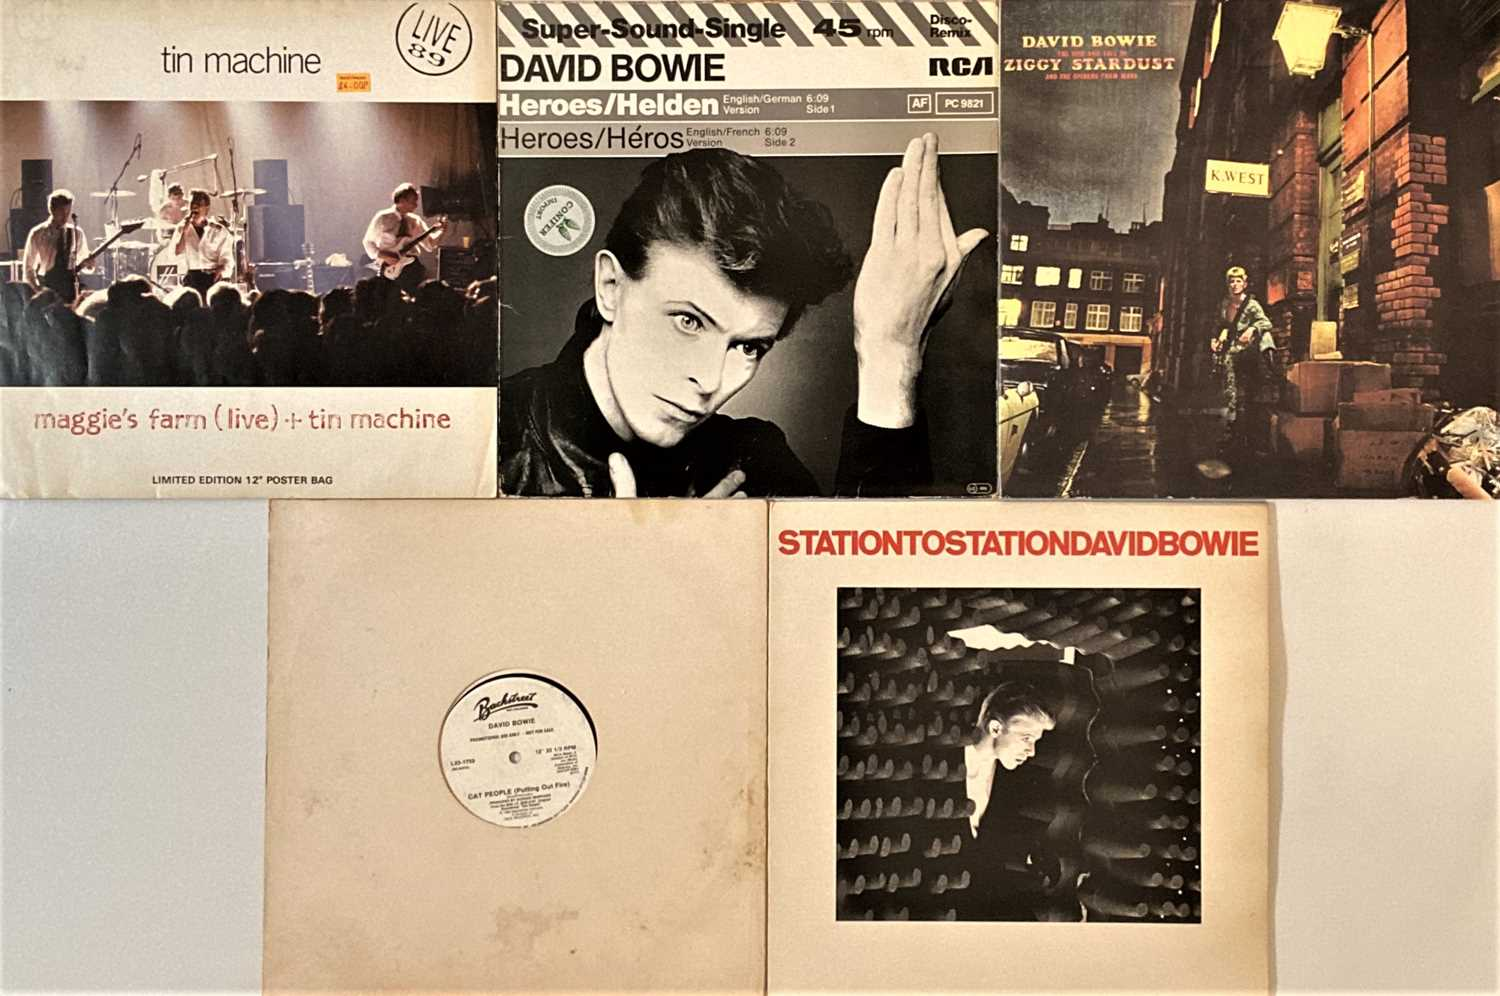 """DAVID BOWIE - CD COLLECTION PLUS LP/12"""" SELECTION - Image 5 of 5"""